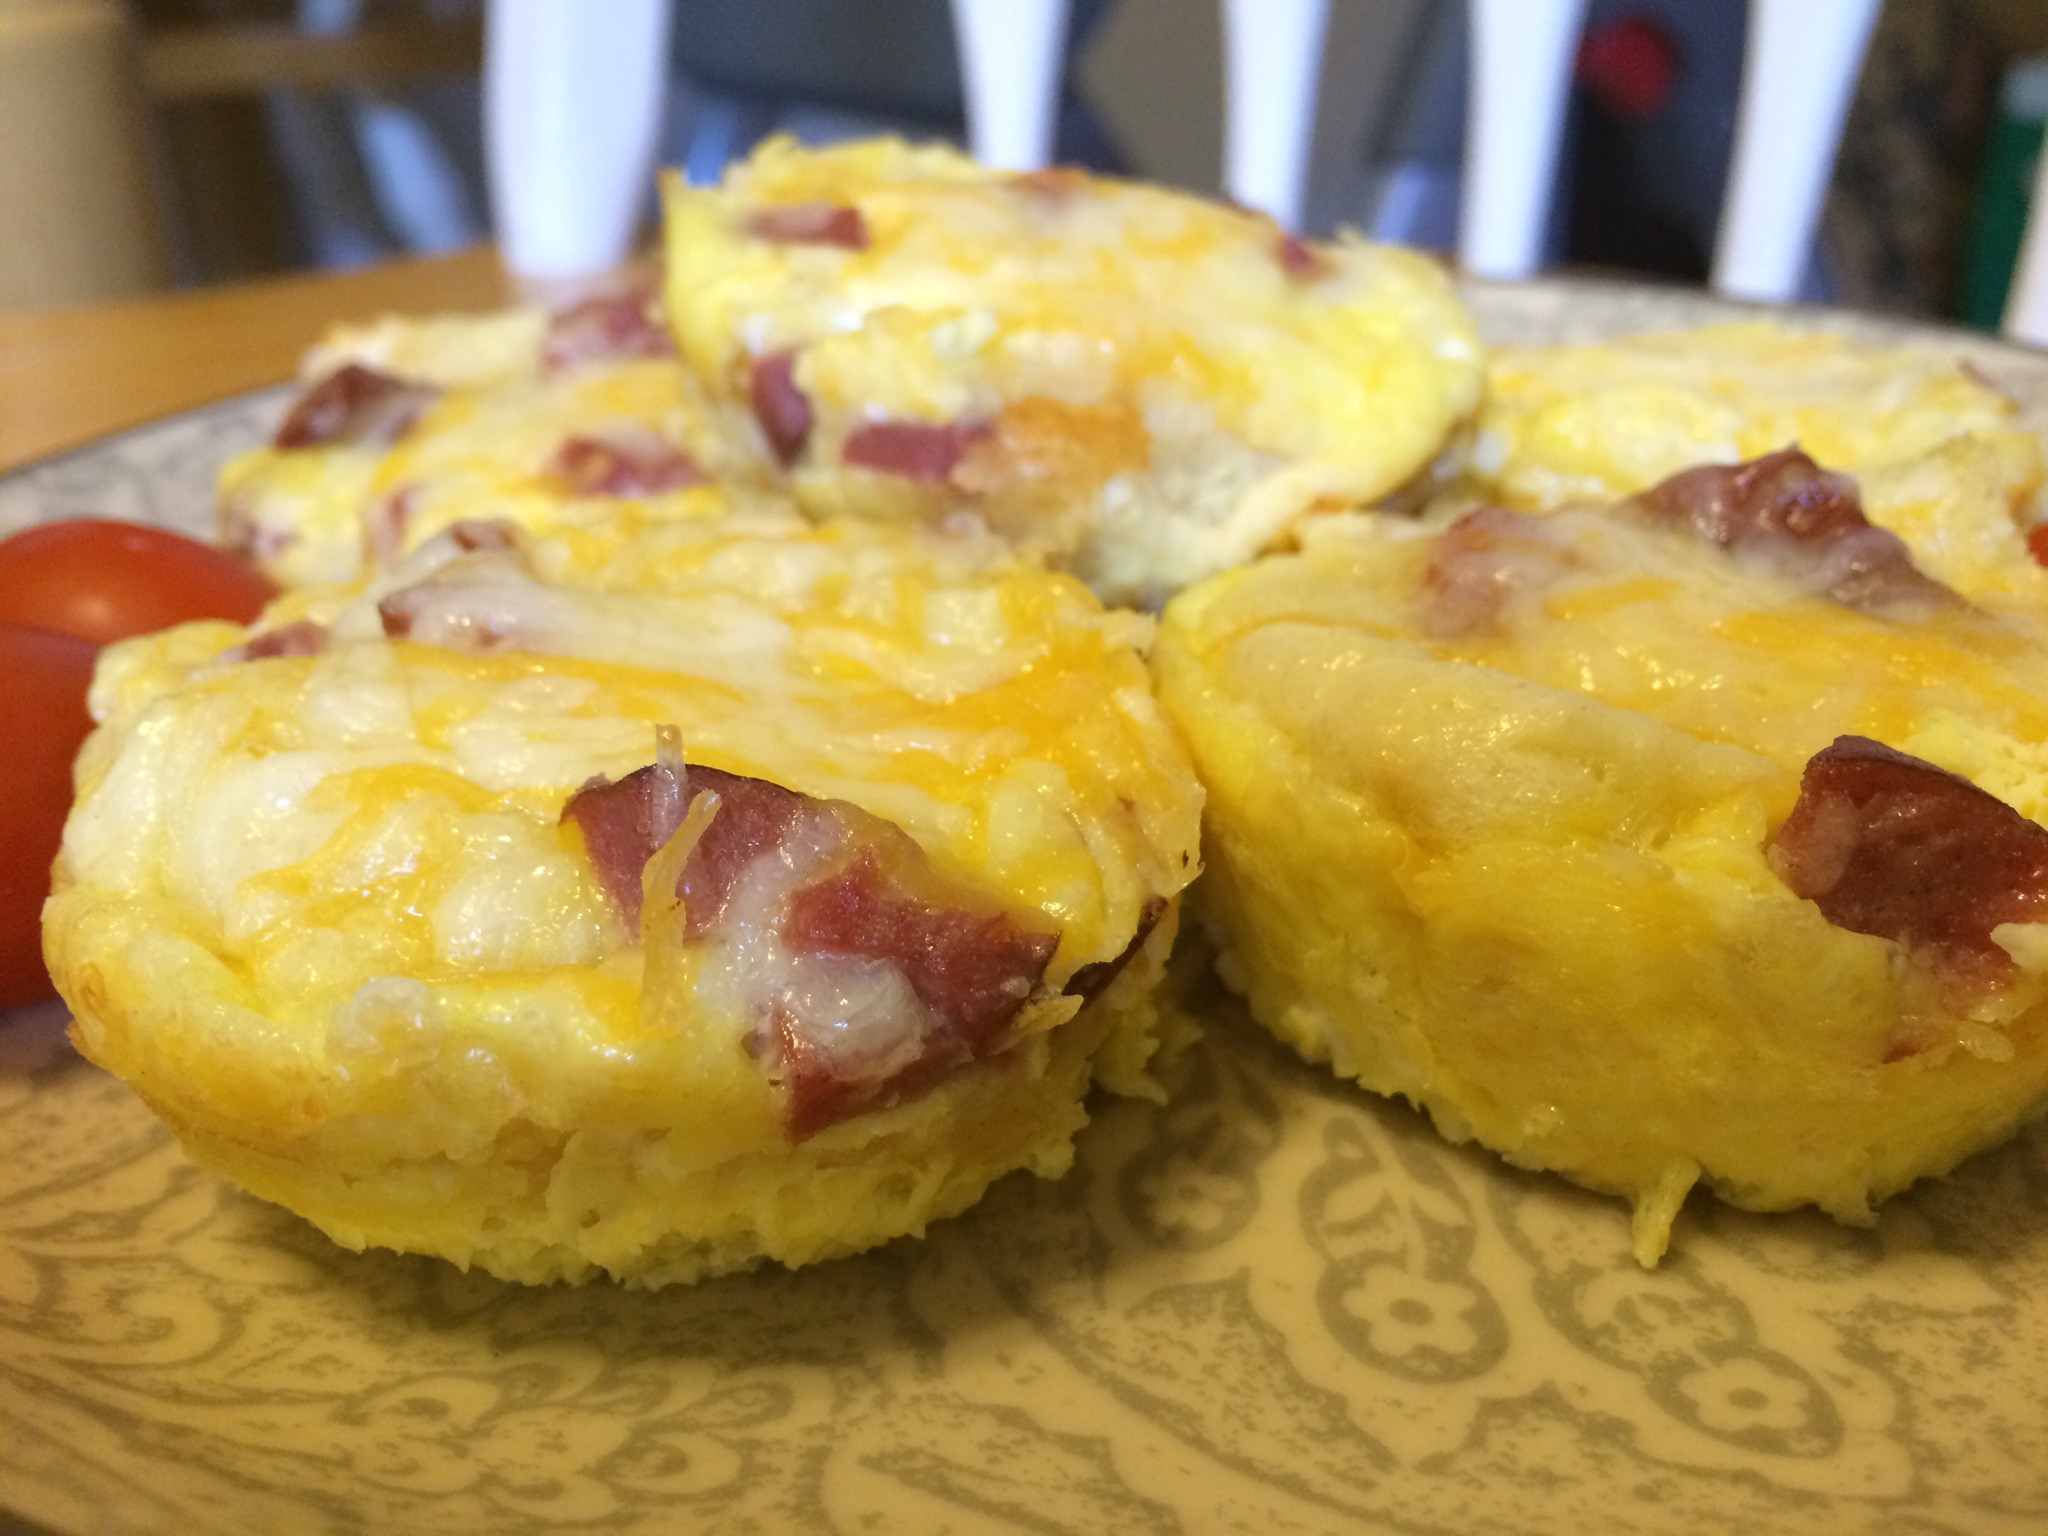 Breakfast & Pizza Cuppies: 2 Toddler-Friendly Meals